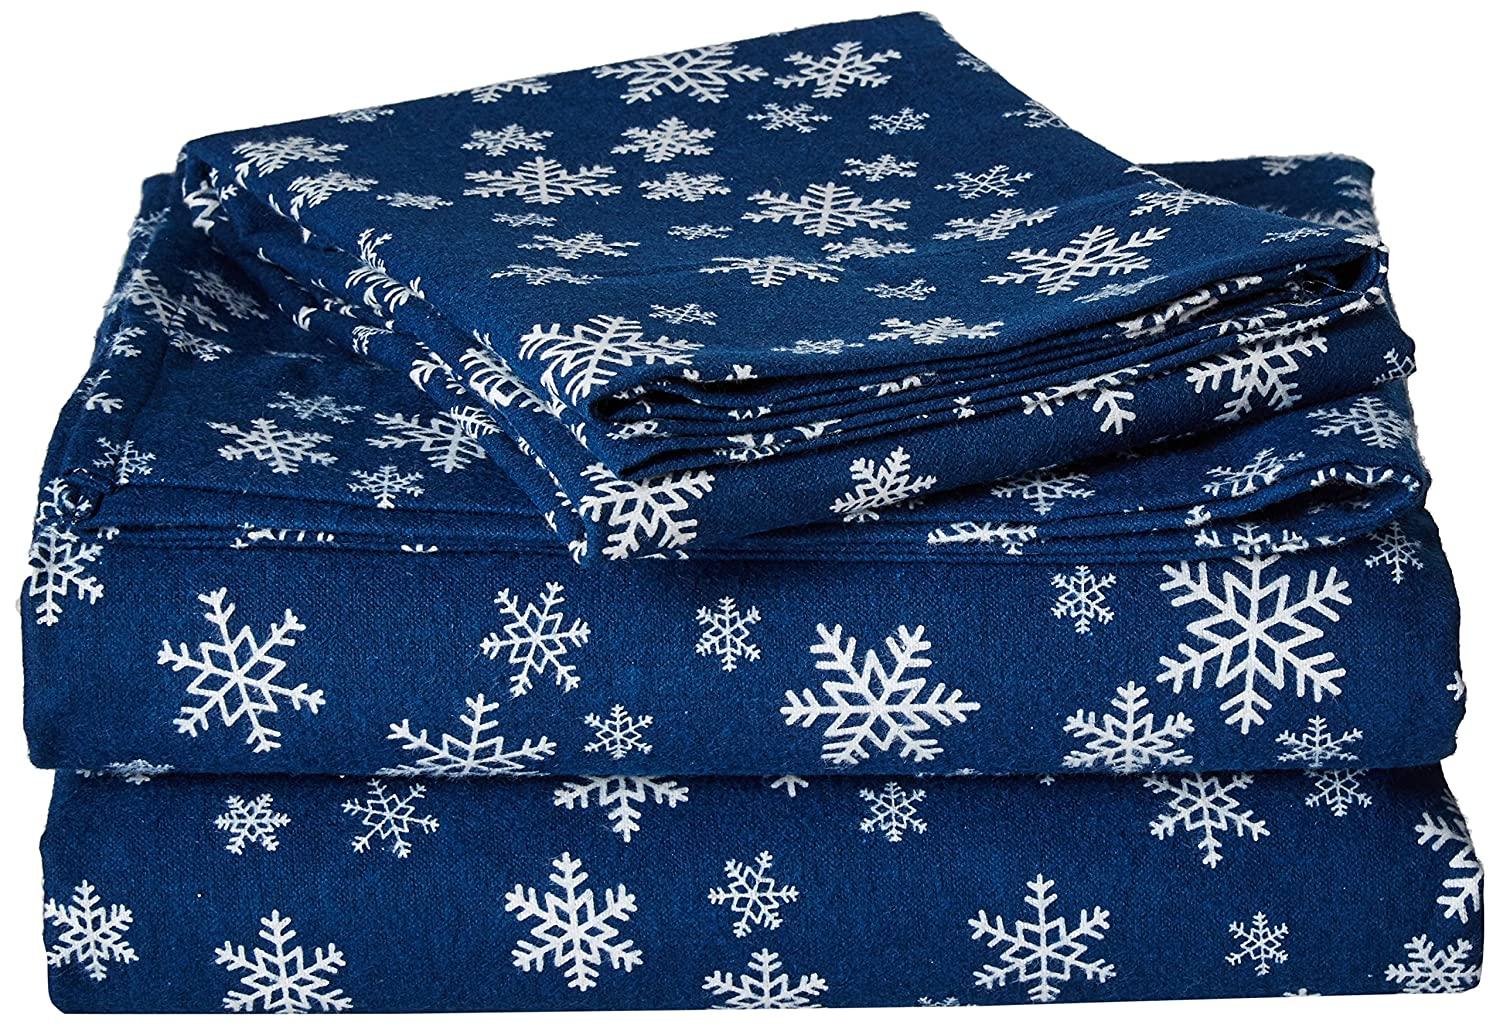 Brielle Cotton Flannel Sheet Set, Twin, Navy Snowflake